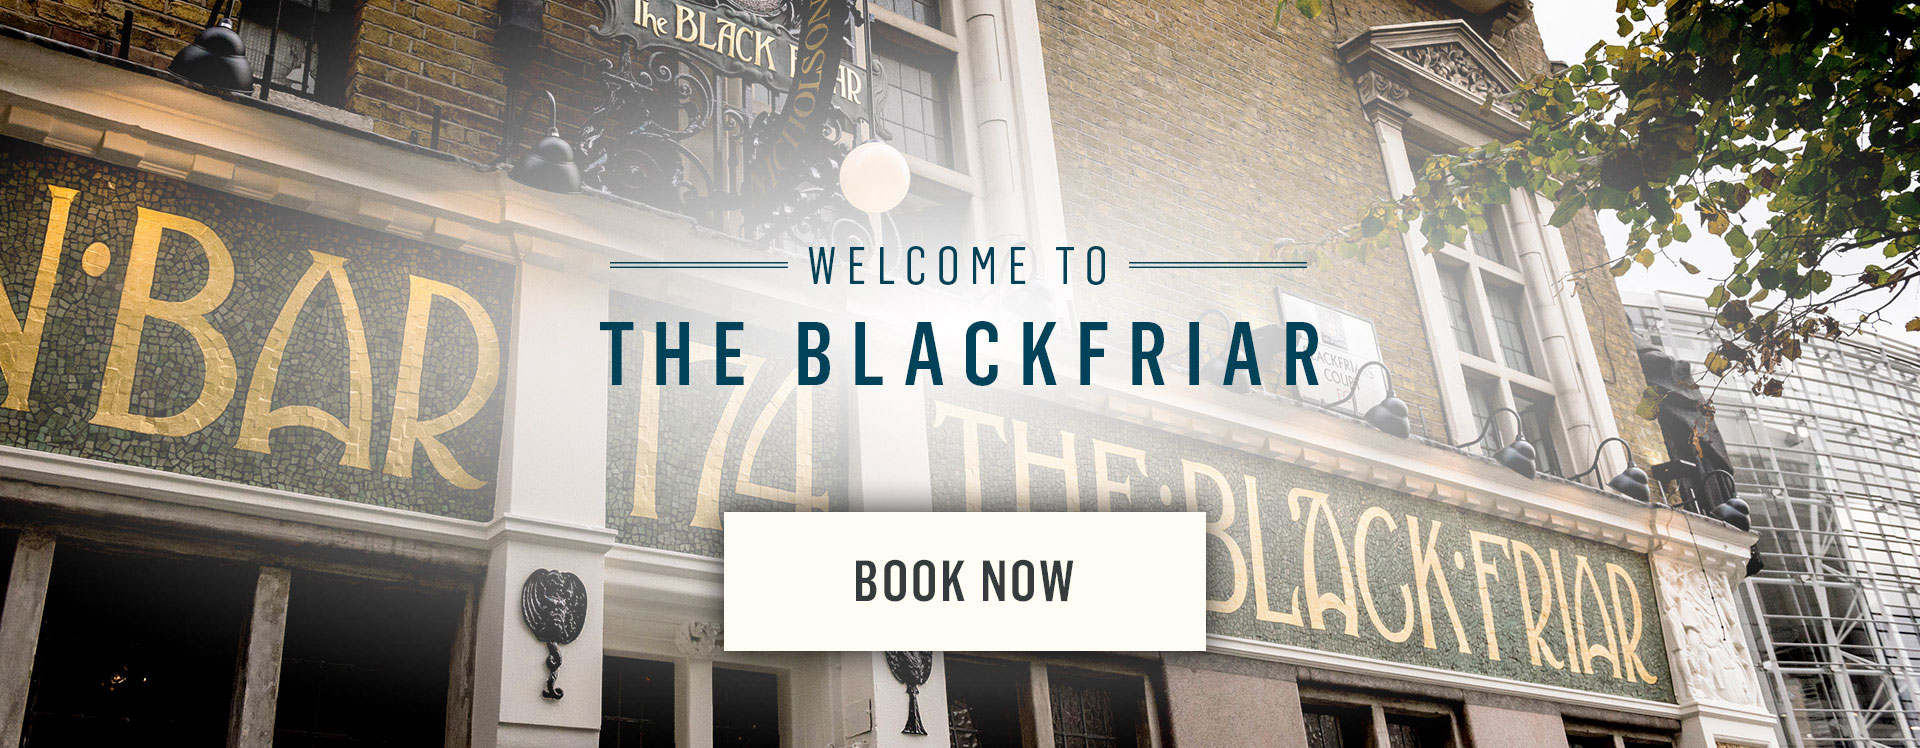 Welcome to The Blackfriar - Book Now